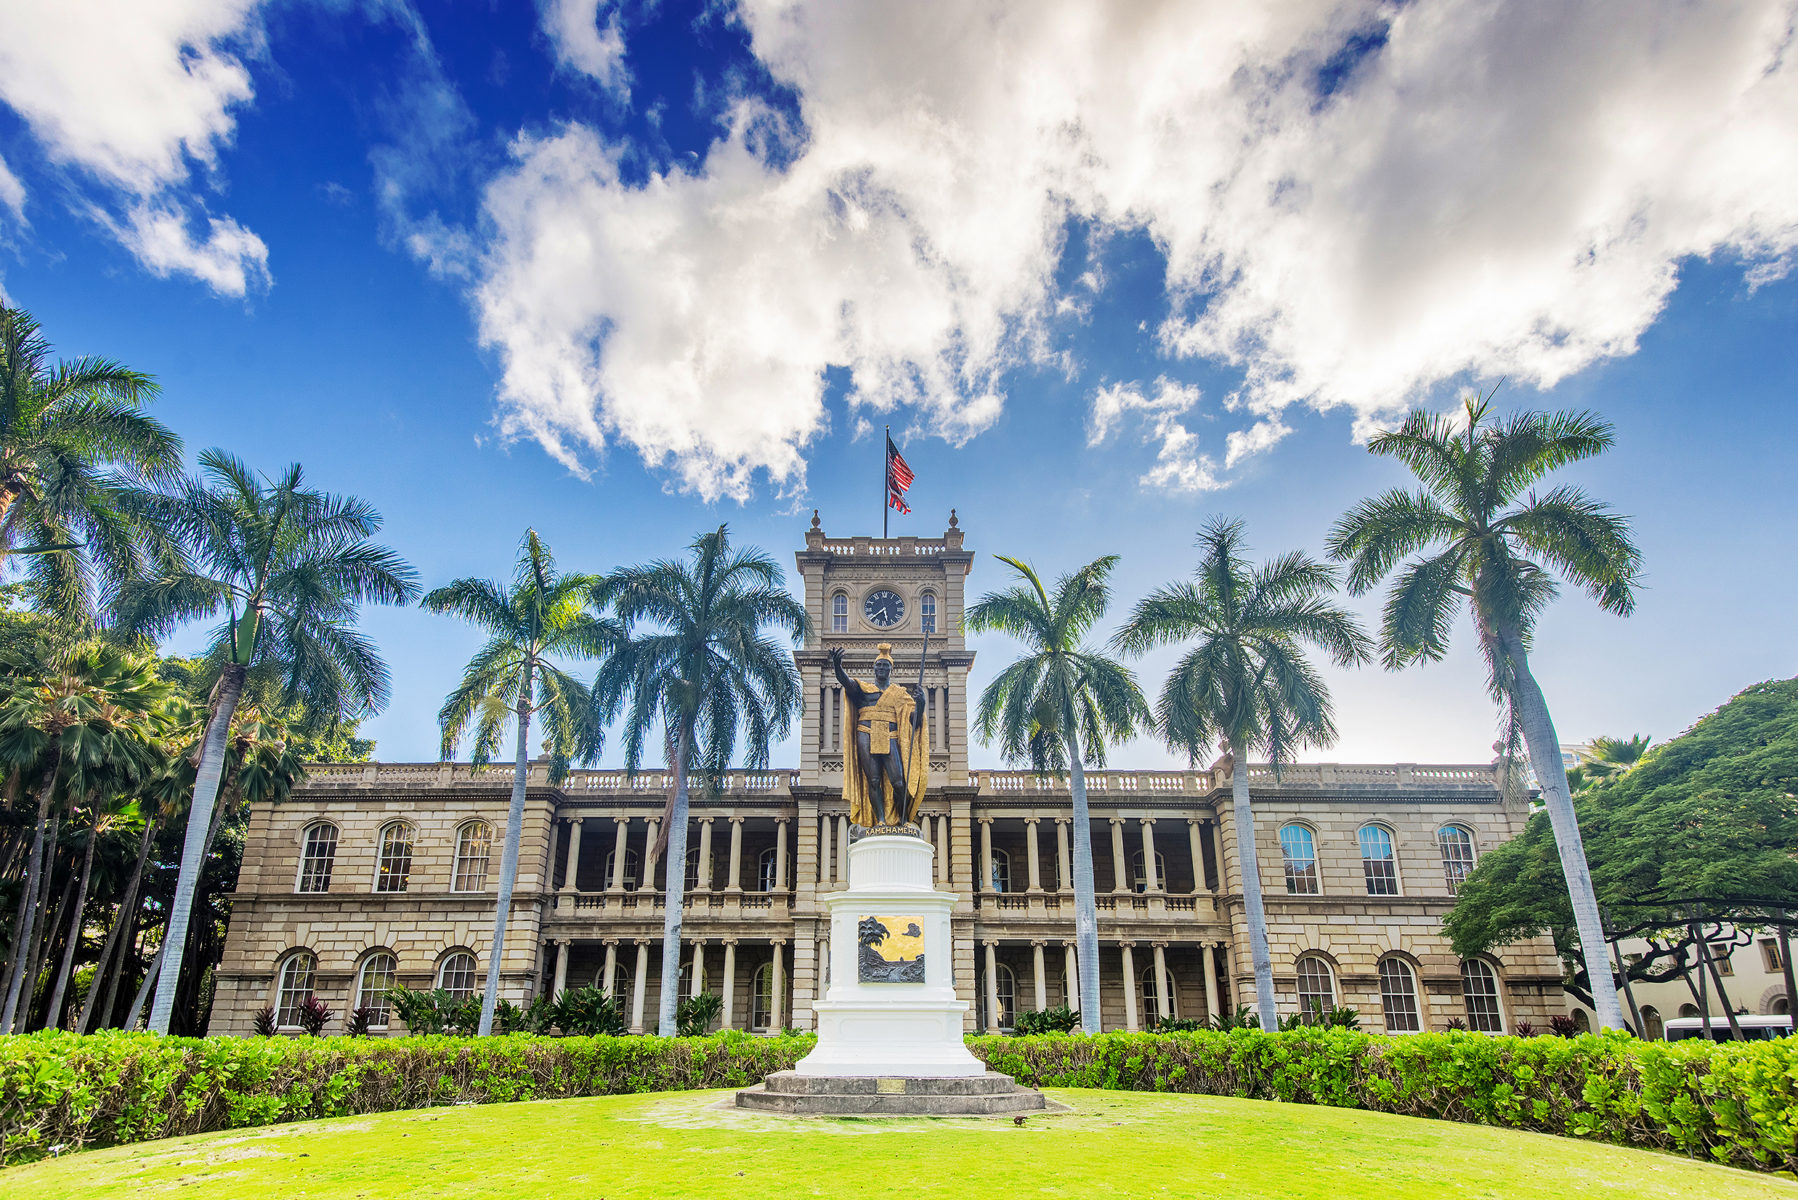 Iolani Palace on O'ahu